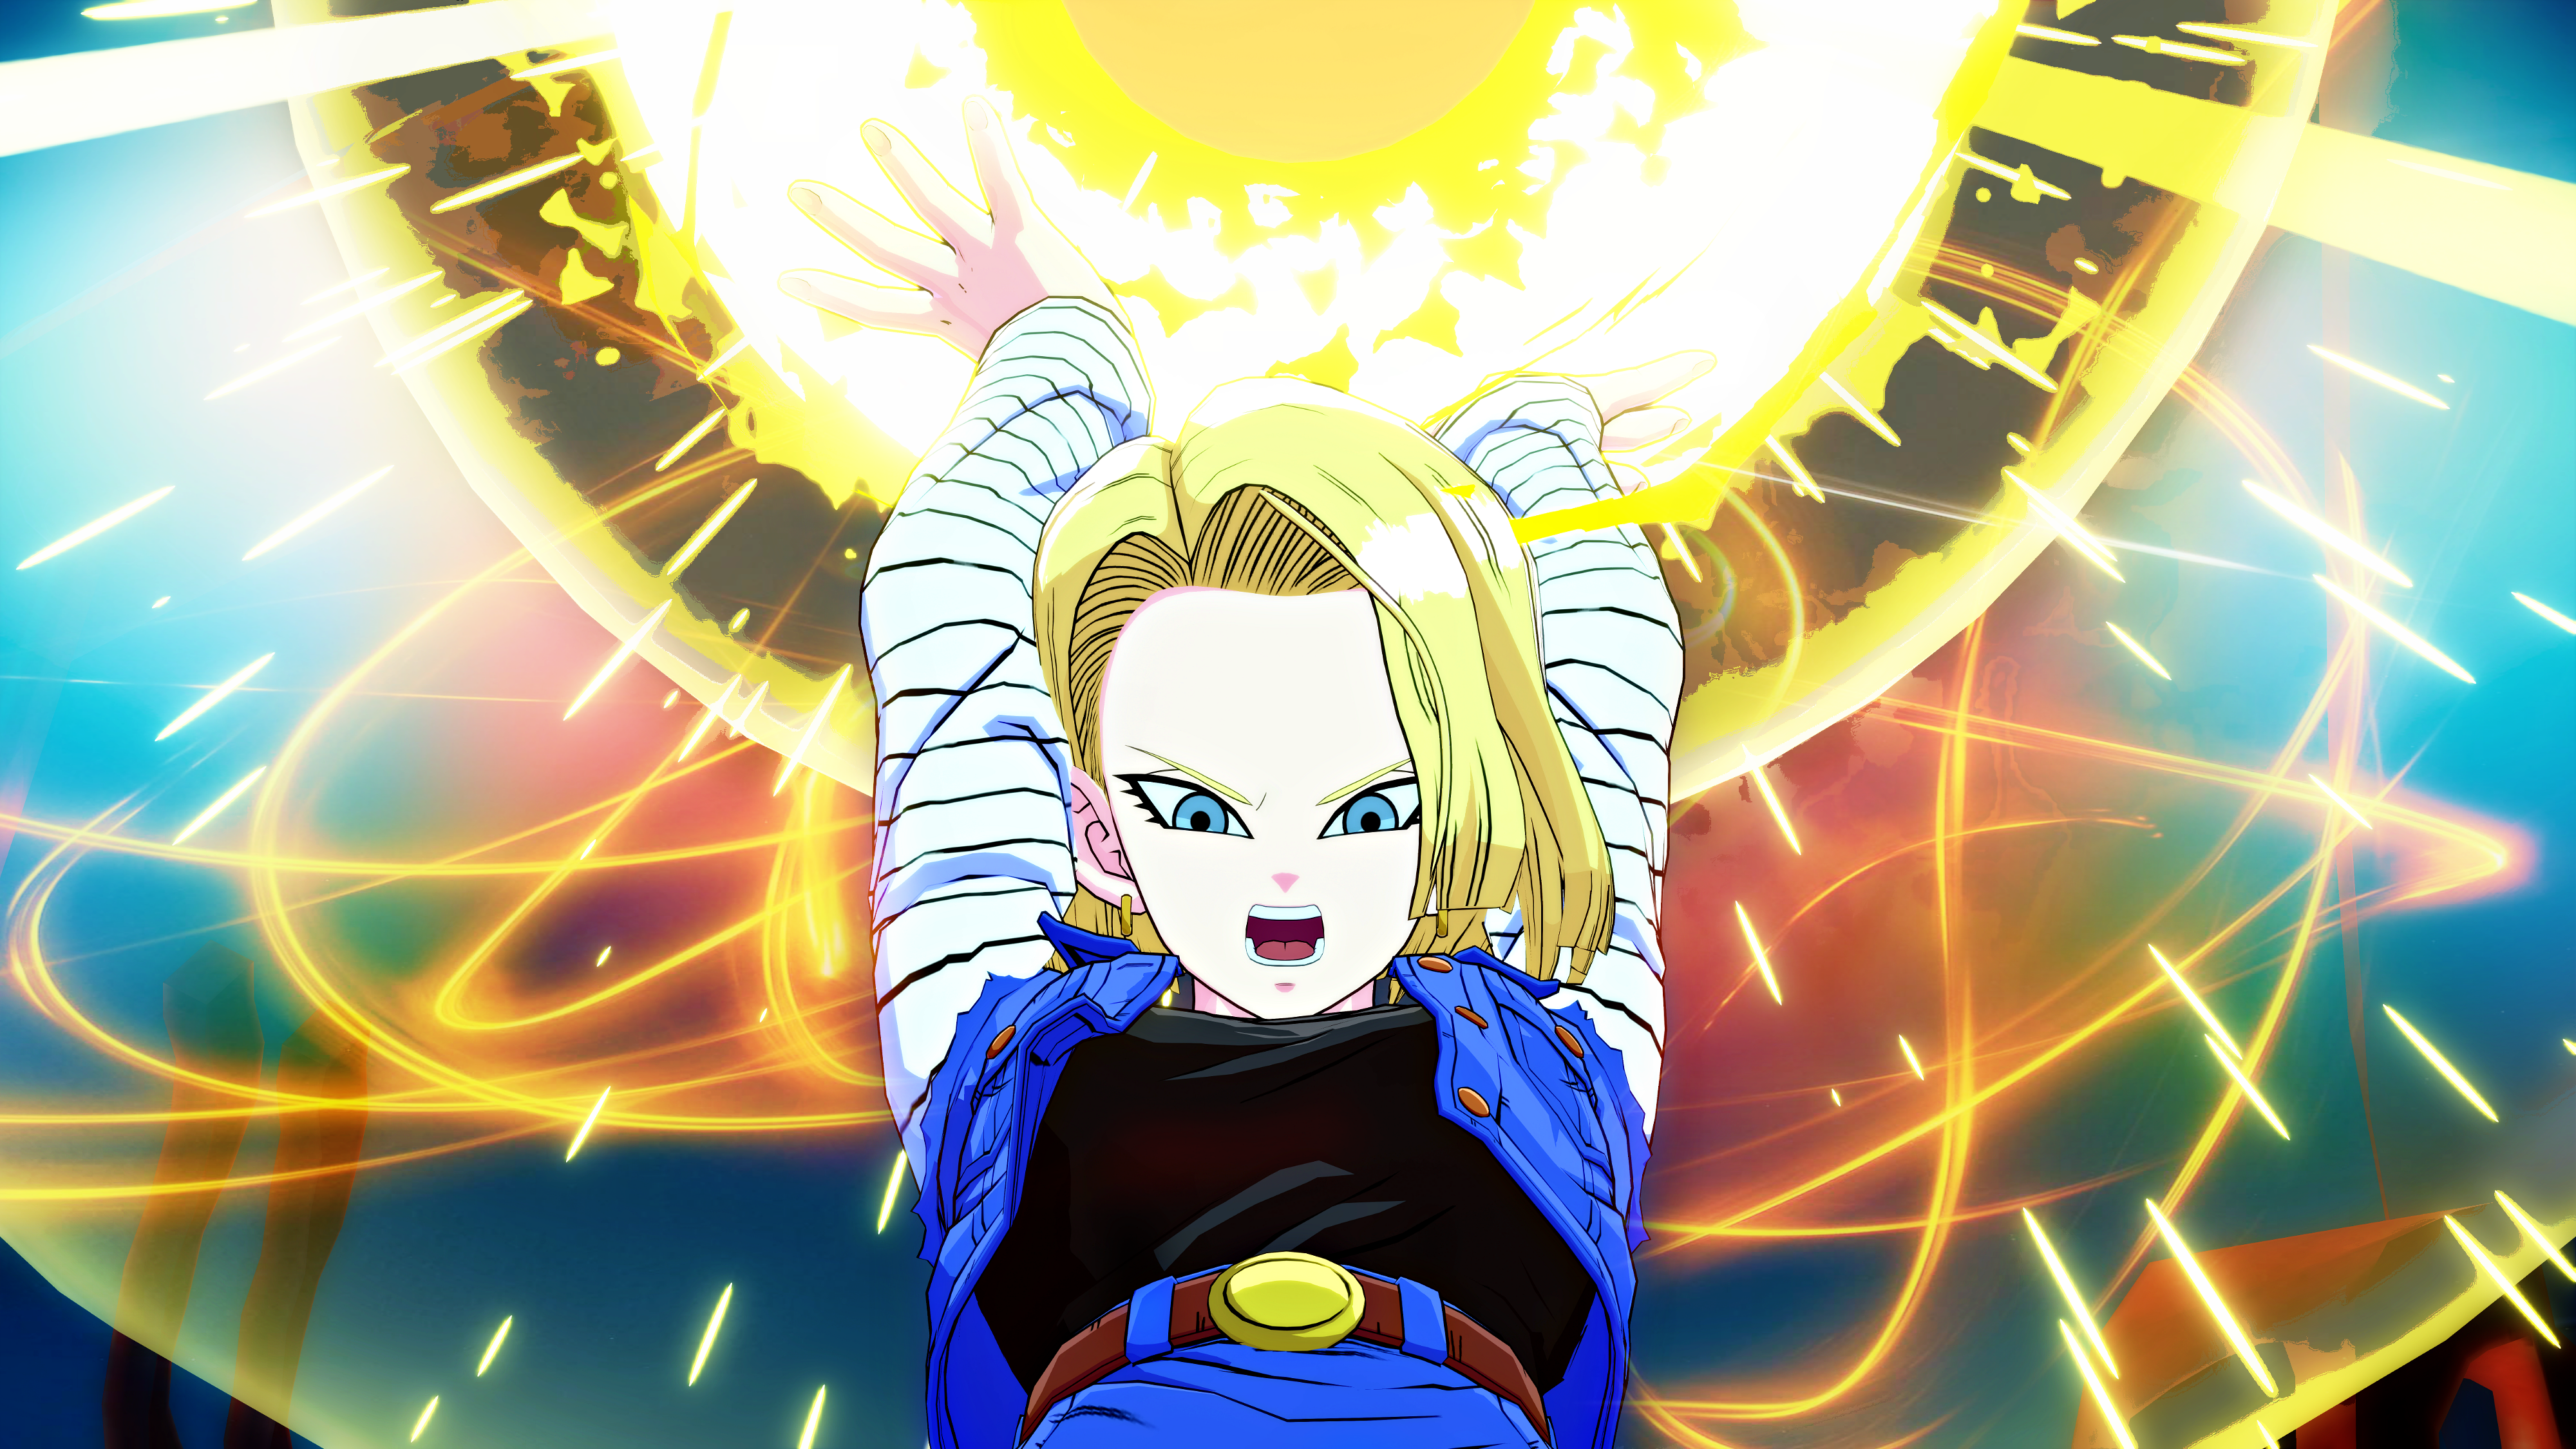 Android 18 Wallpapers - Top Free Android 18 Backgrounds